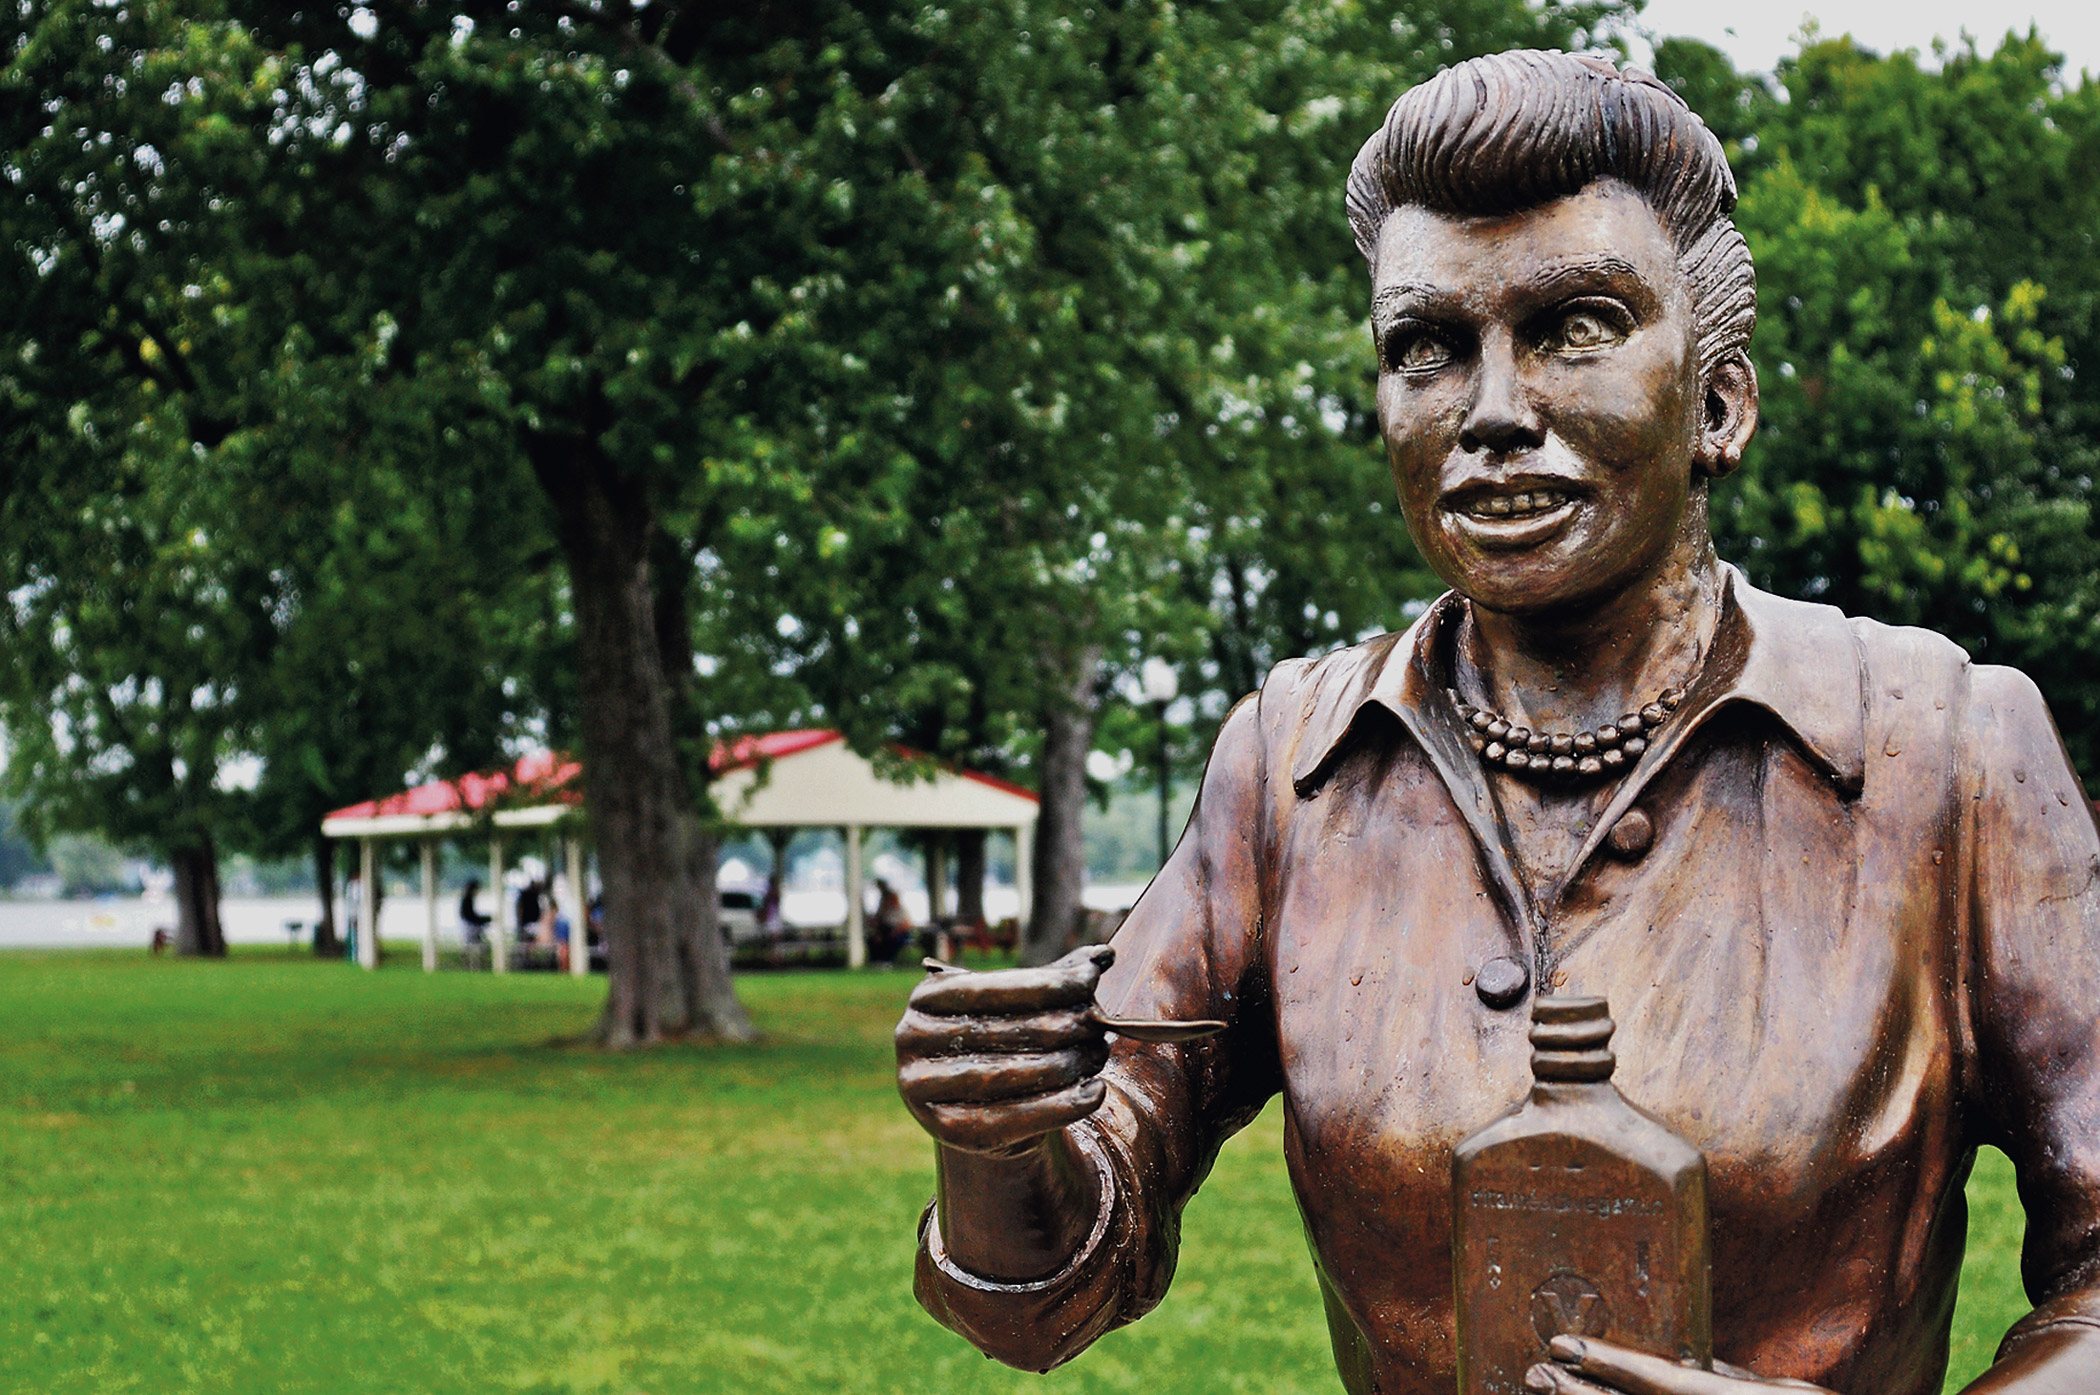 A bronze sculpture of Lucille Ball is displayed in Lucille Ball Memorial Park in Celoron, N.Y.